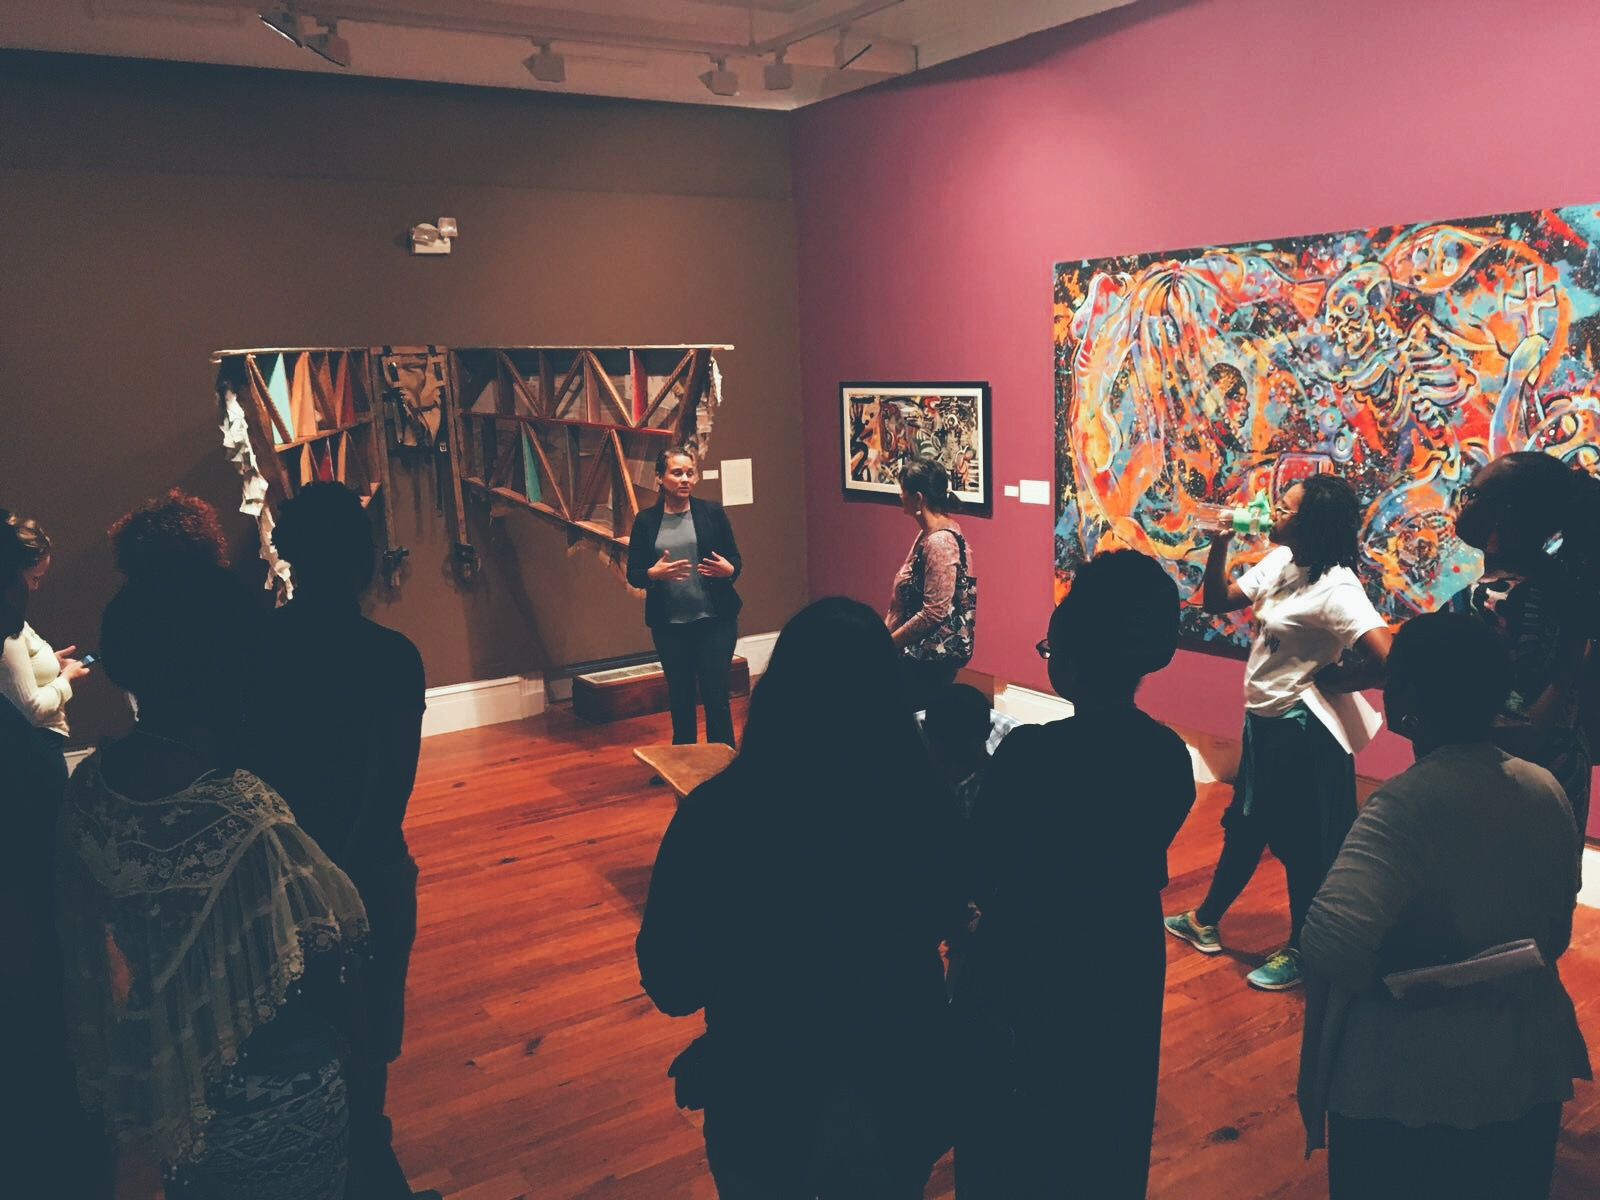 """Routes and Roots the guided tour of """"Medium: Practices and Routes of Spirituality and Mysticism"""" held at the NAGB on February 3rd, 2018."""